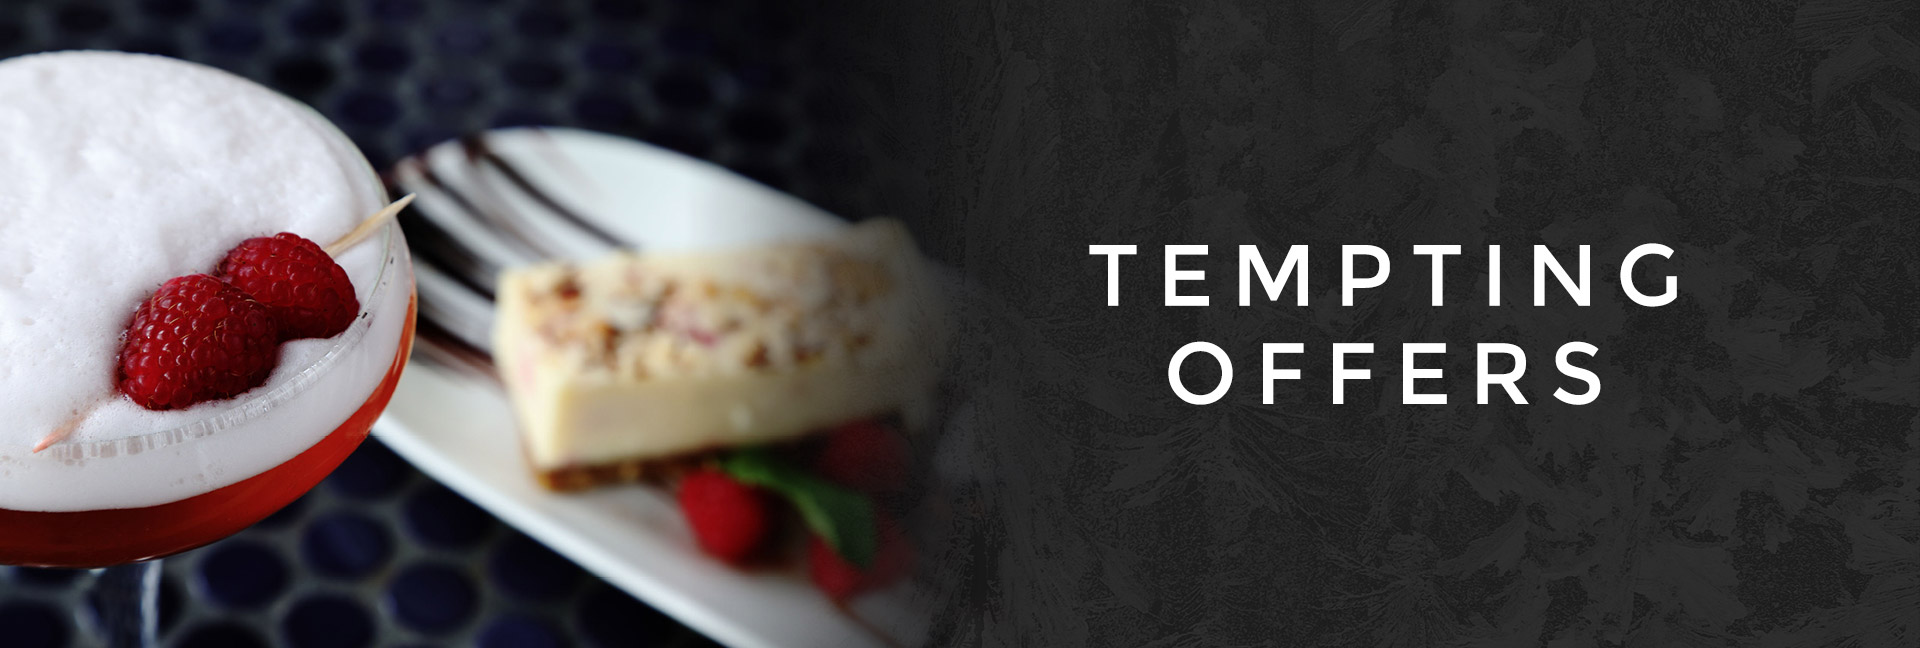 Temping offers at All Bar One Wimbledon